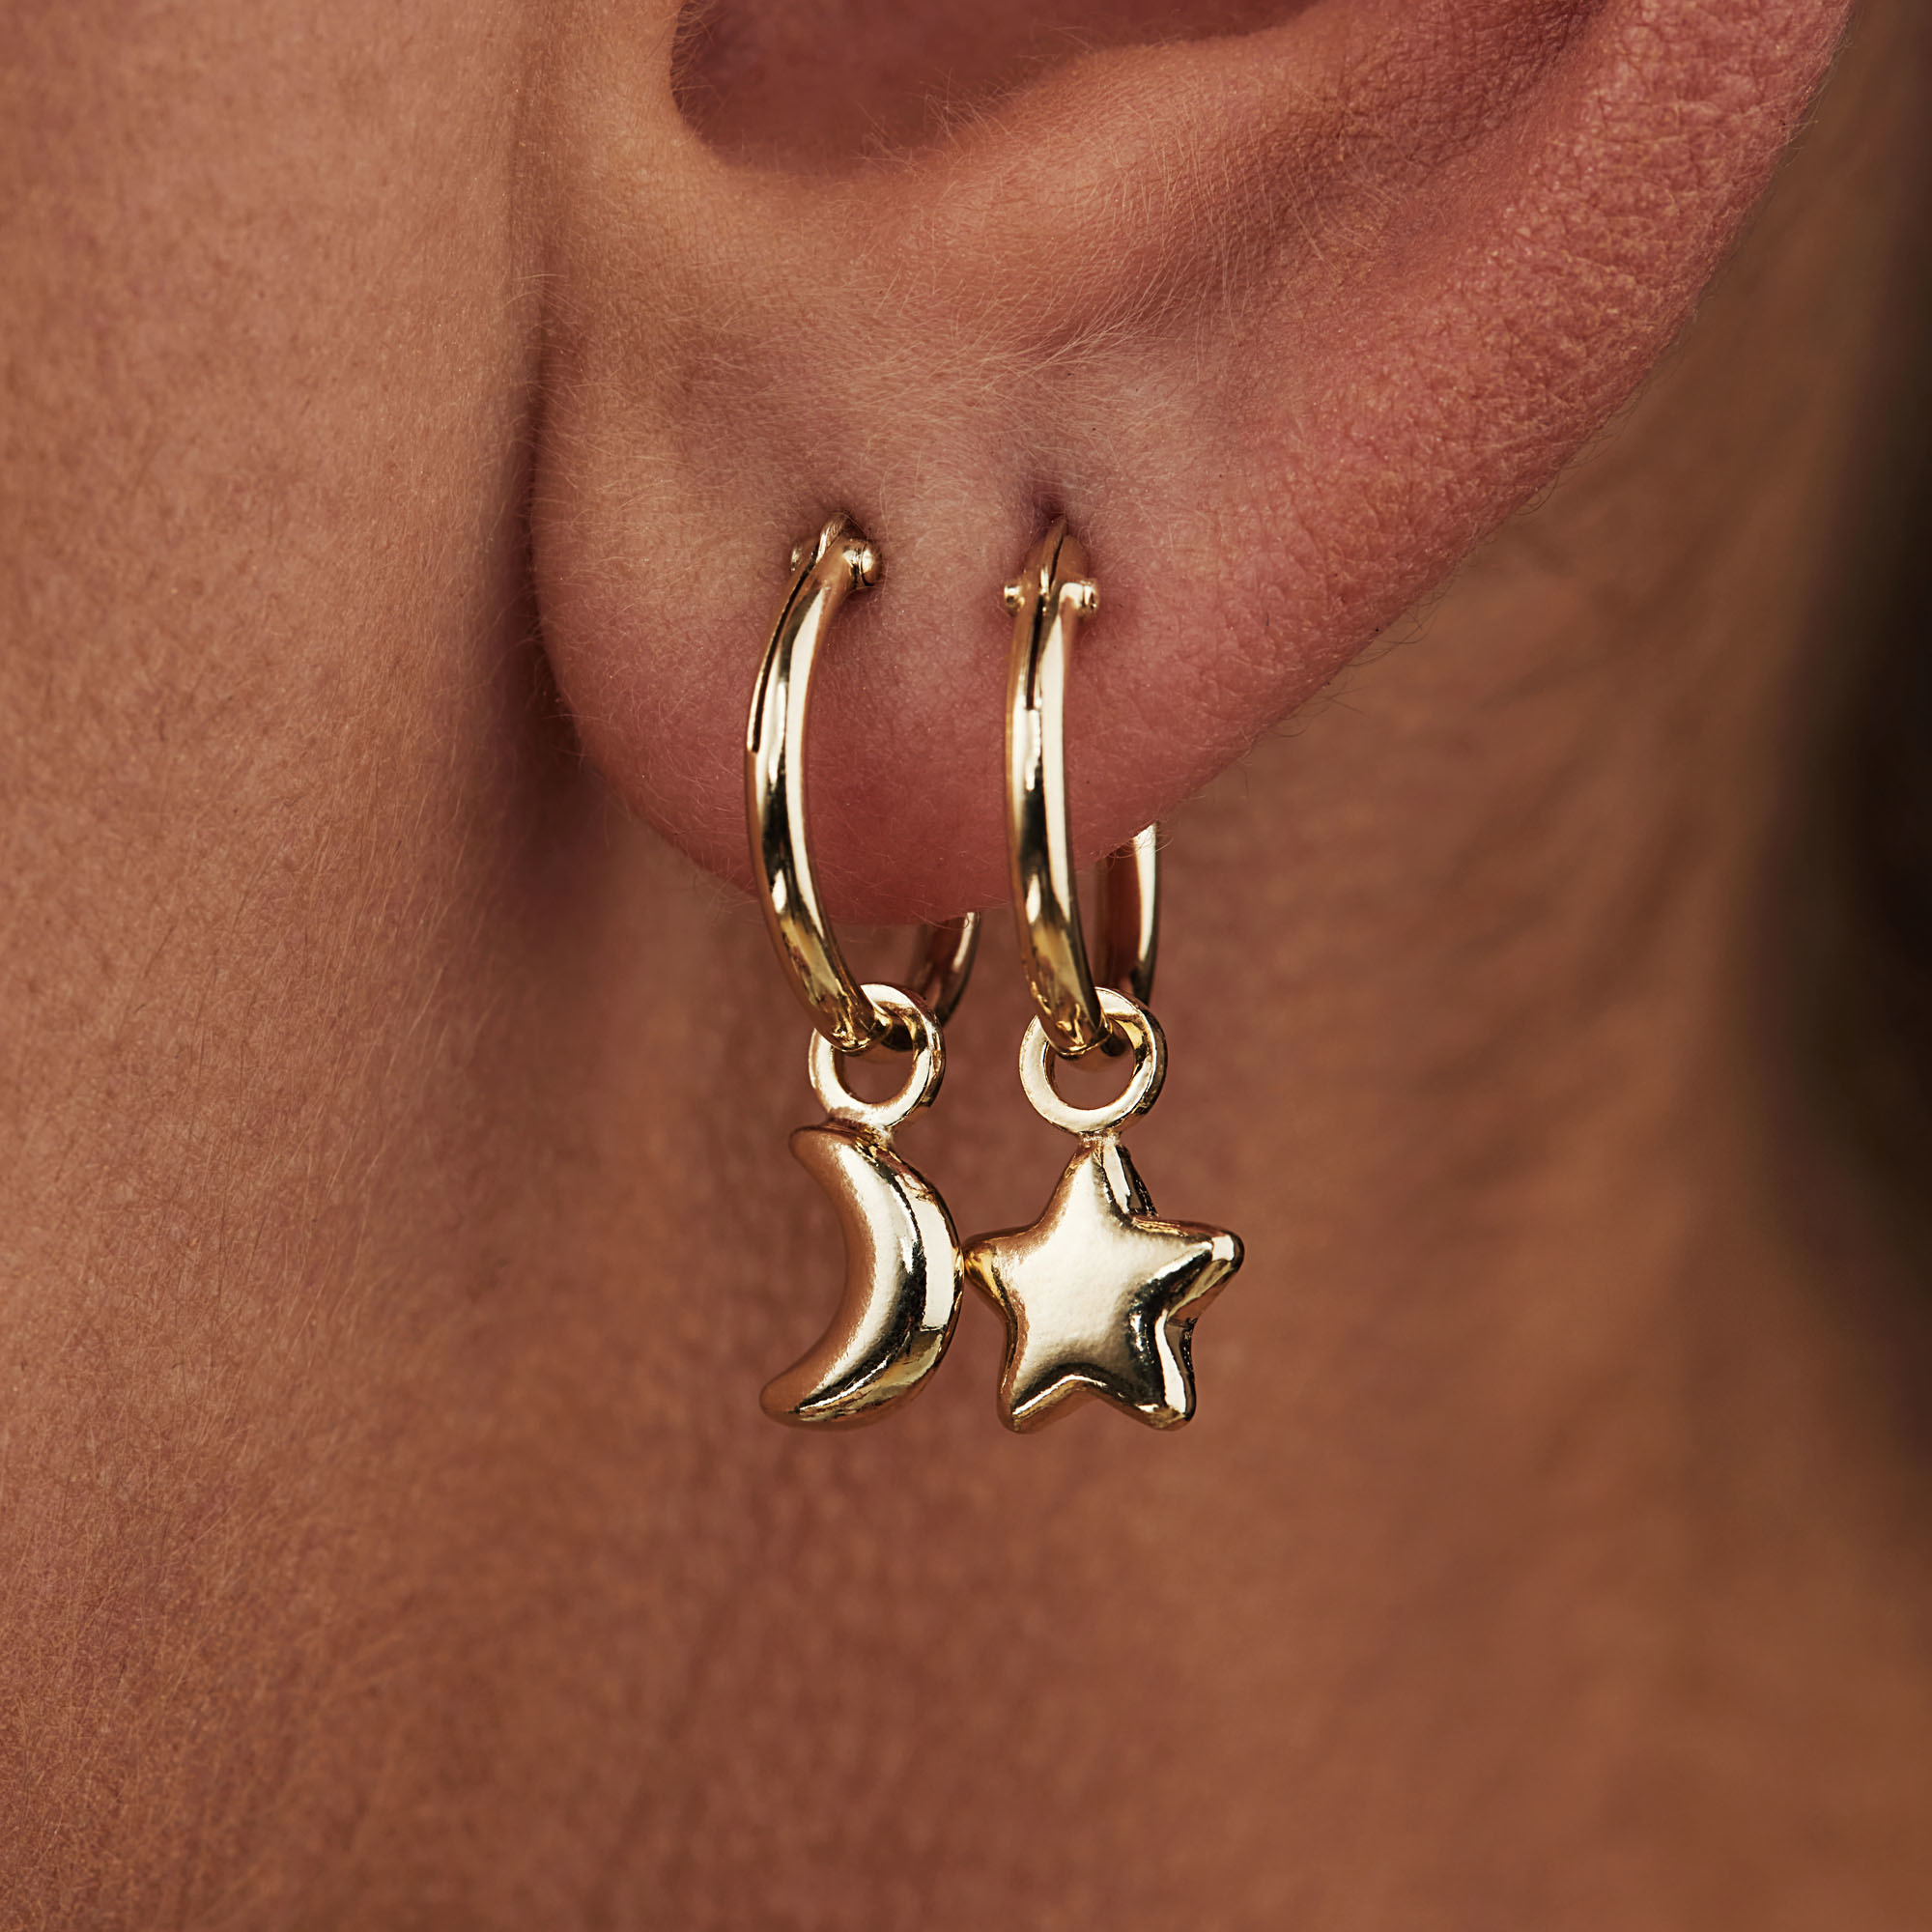 Selected Jewels Julie Esthée 925 sterling silver gold colored creoles with stars